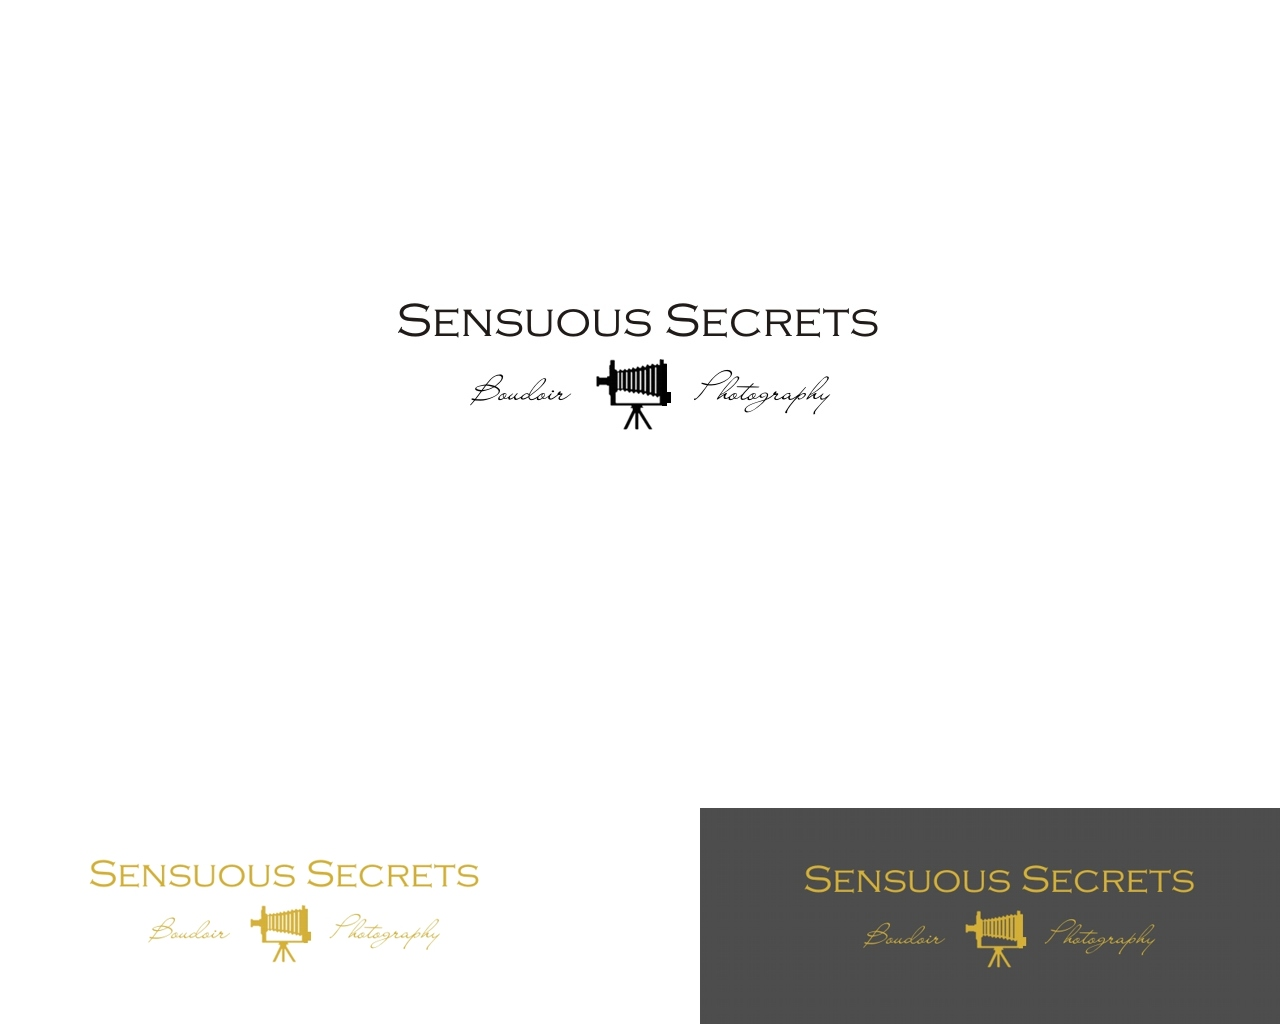 Logo Design by Q_Division_Designs - Entry No. 62 in the Logo Design Contest Artistic Logo Design for Sensuous Secrets Boudoir Photography.